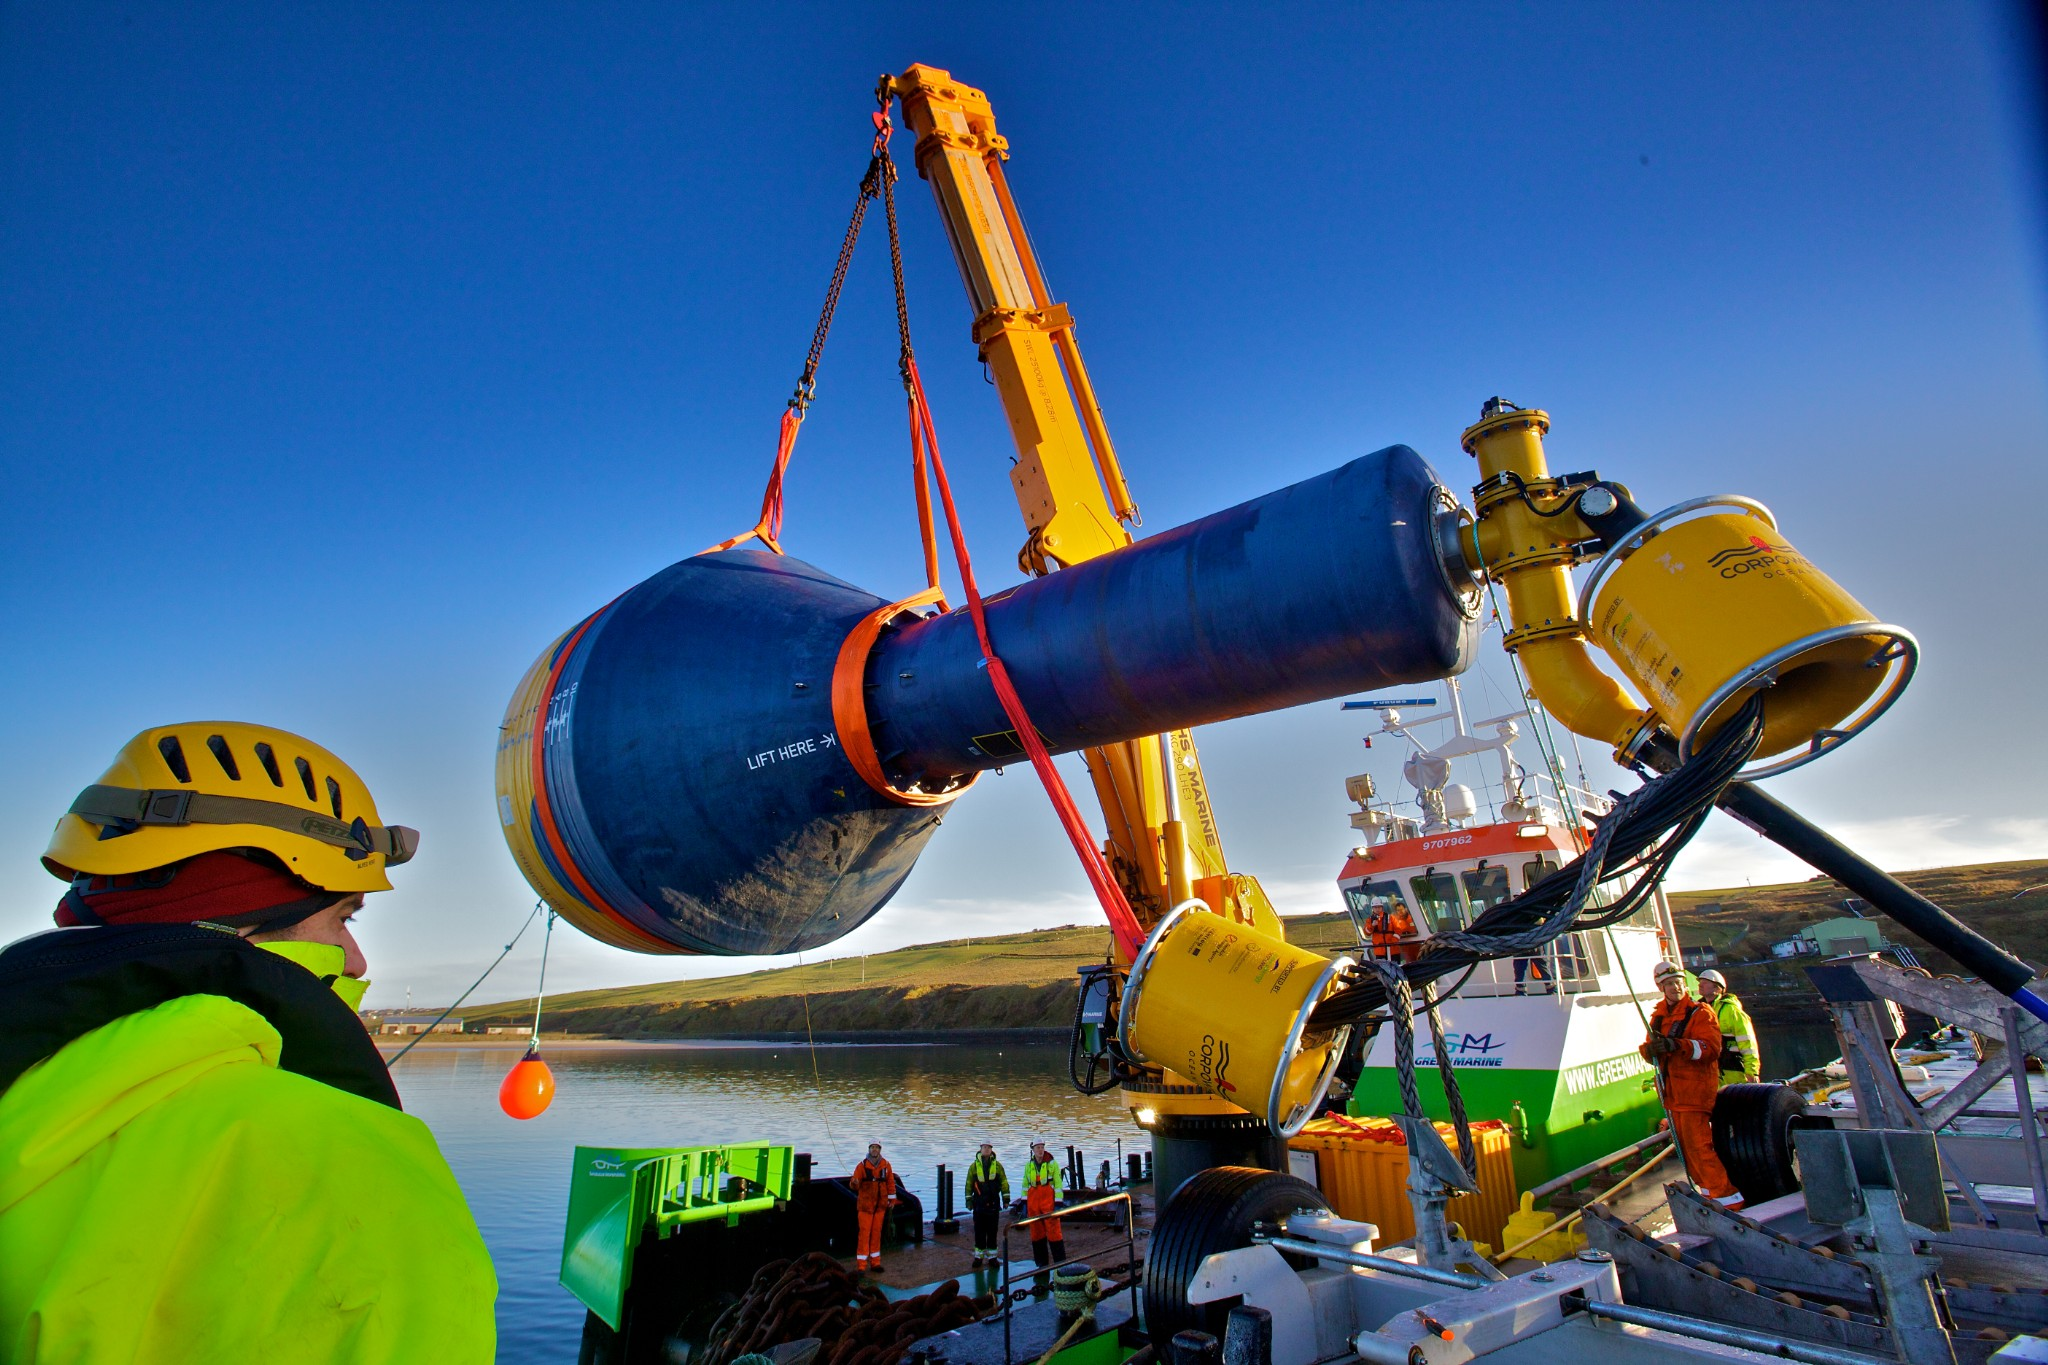 Corpower device deployment in Scapa Flow, Orkney - image by Colin Keldie